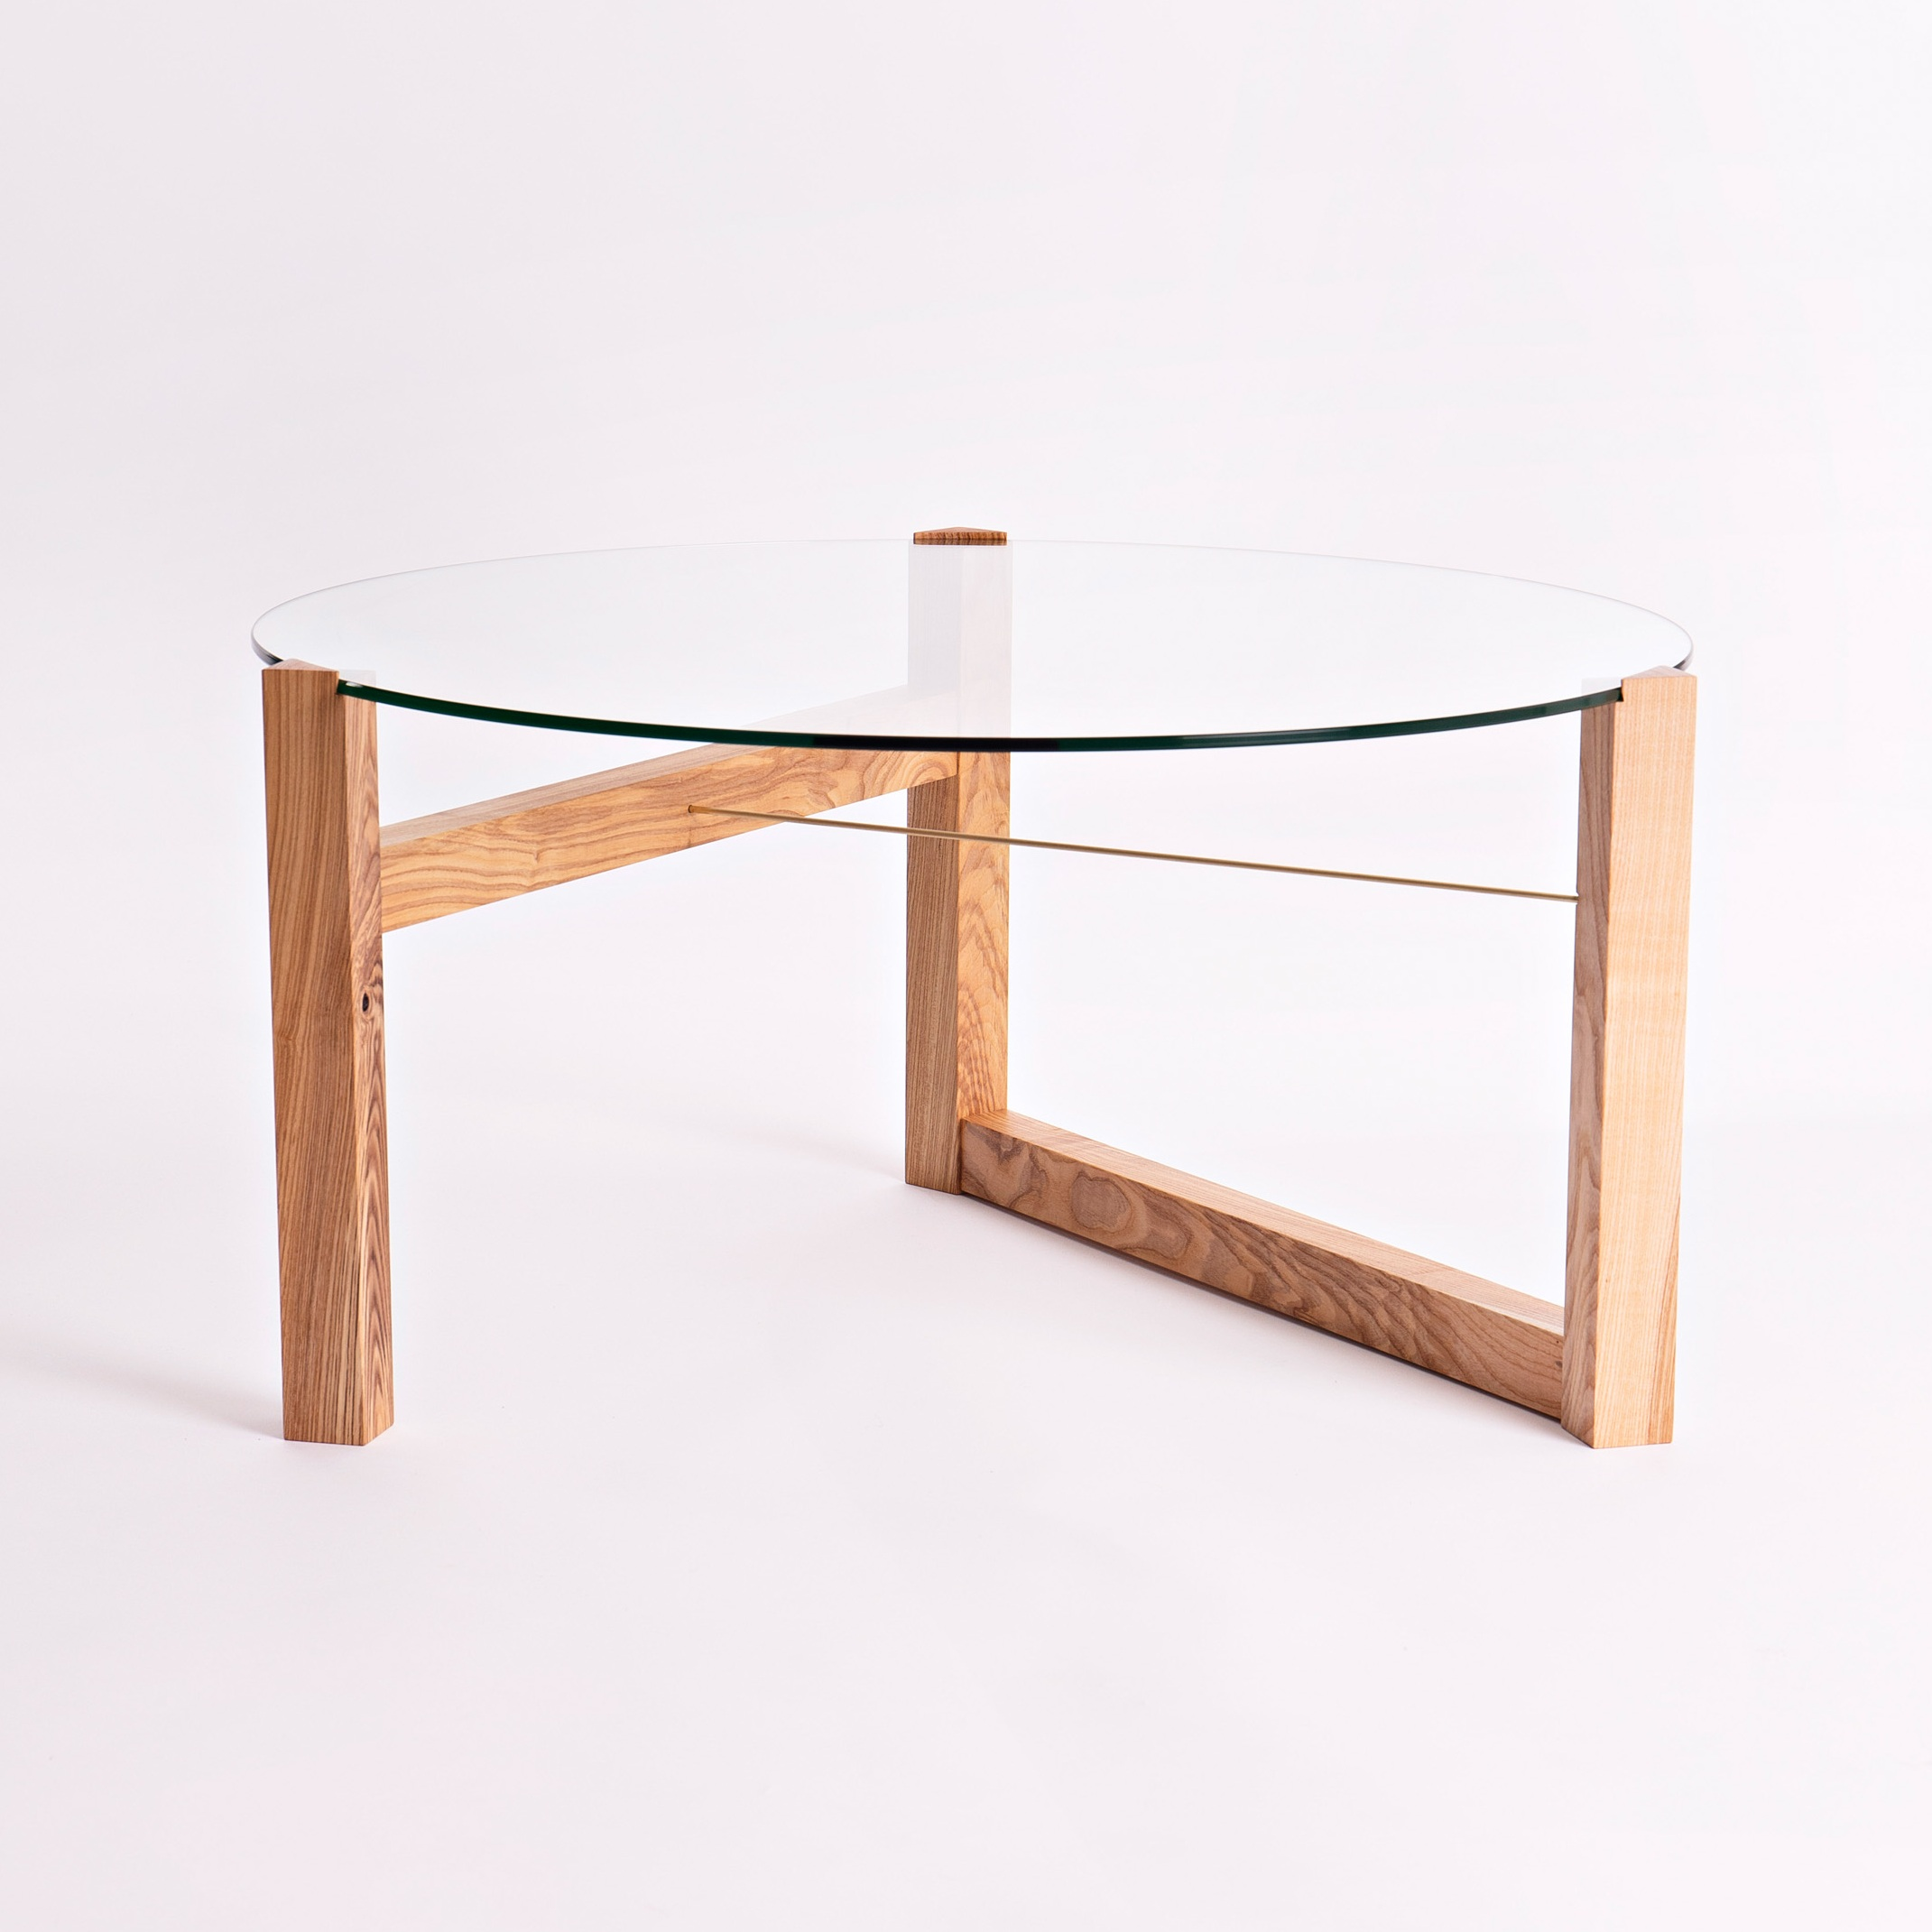 Materials - The table is handmade in beautiful wild Irish ash or ebonised European oak, with a solid brass rod to secure the glass to the top. The glass is toughened safety glass making it safe to handle. The table is finished with a hardwearing, natural, hand rubbed oil.The wild Irish ash trees are sourced from Co. Wicklow and are either windblown or have reached their end of life and need to be taken down. They are unmanaged